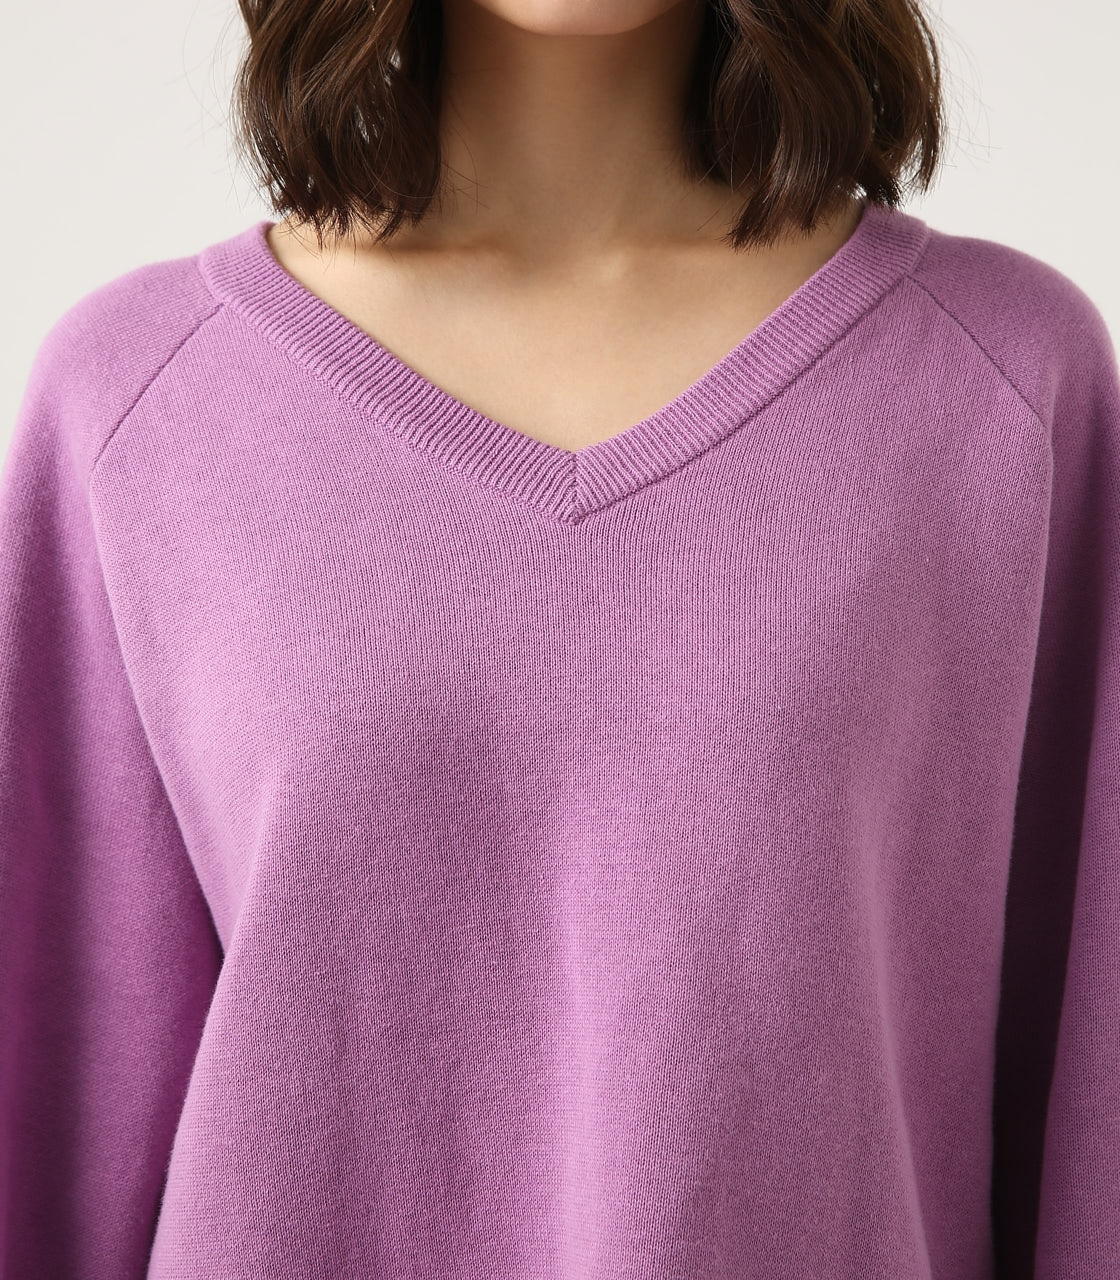 【AZUL BY MOUSSY】SWEATTER Vネック LOOSE TOPS 詳細画像 L/PUR 8